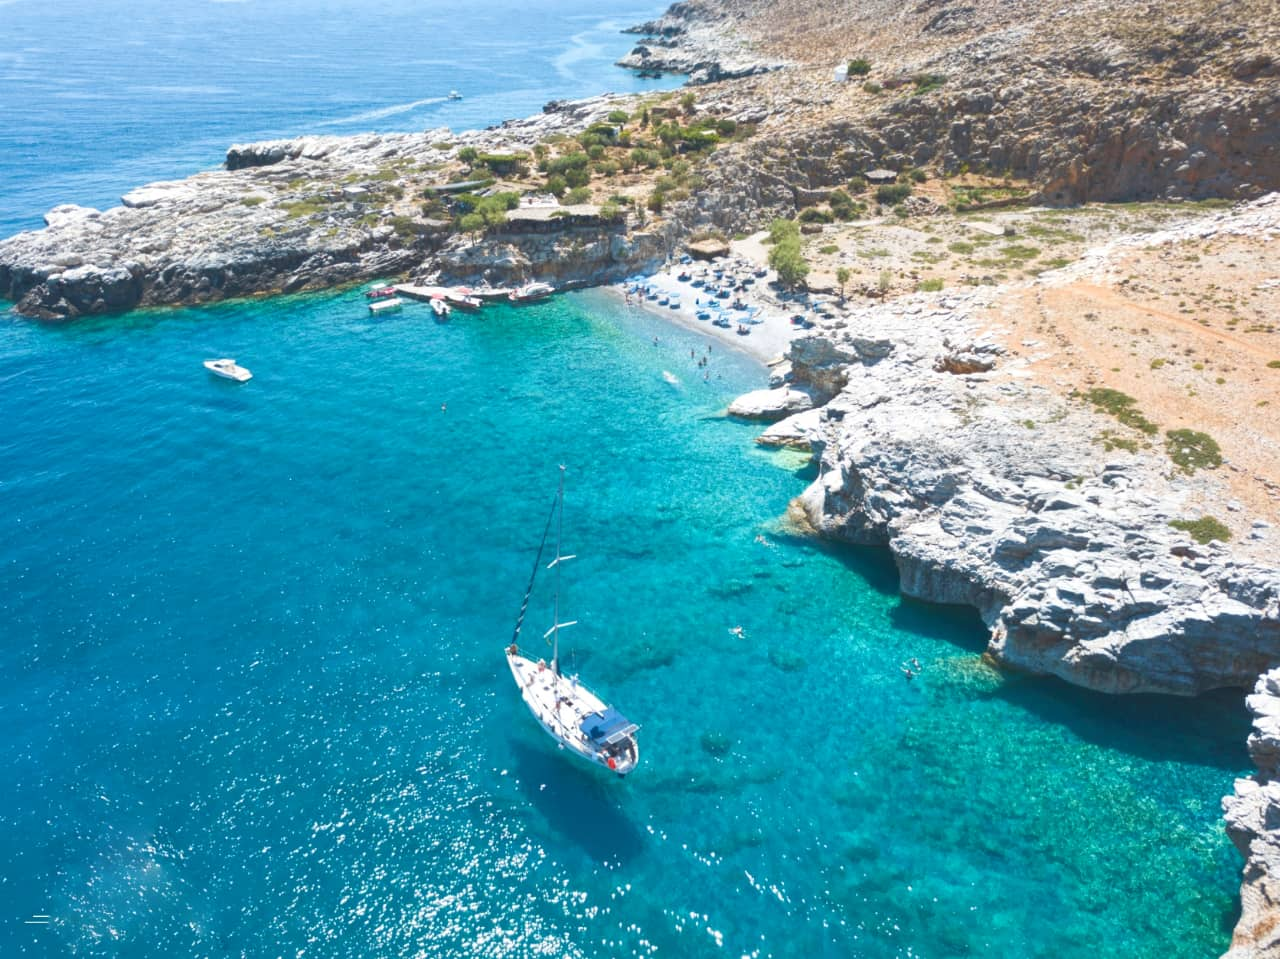 Sailing Trip In South Chania-Most Stunning Beaches, sailing trip south chania crete, sailing trip sfakia port, sailing trip loutro marmara, sailing trip agios pavlos domata beach, sailing trip south chania beaches, sailing trip south crete, best sailing trip crete